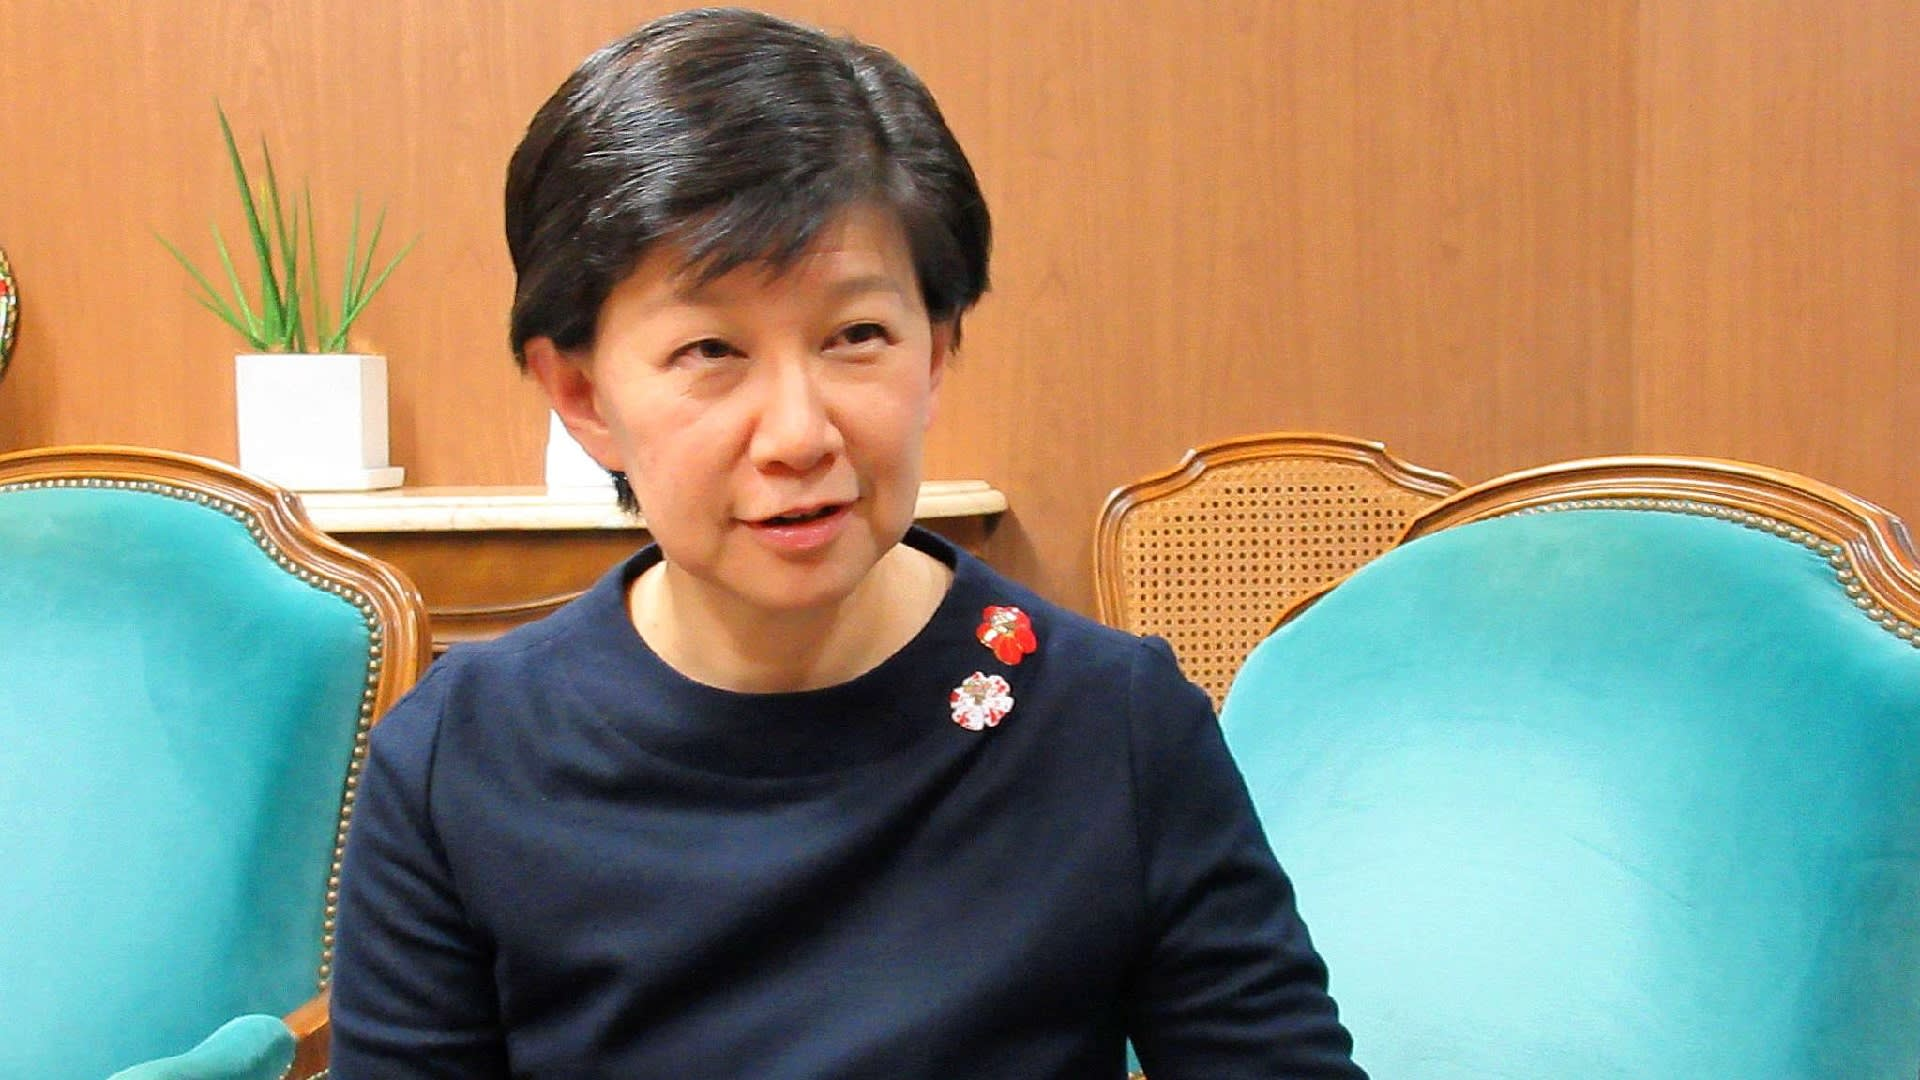 United Nations disarmament official Izumi Nakamitsu urged China to be more active in international discussions on nuclear nonproliferation.